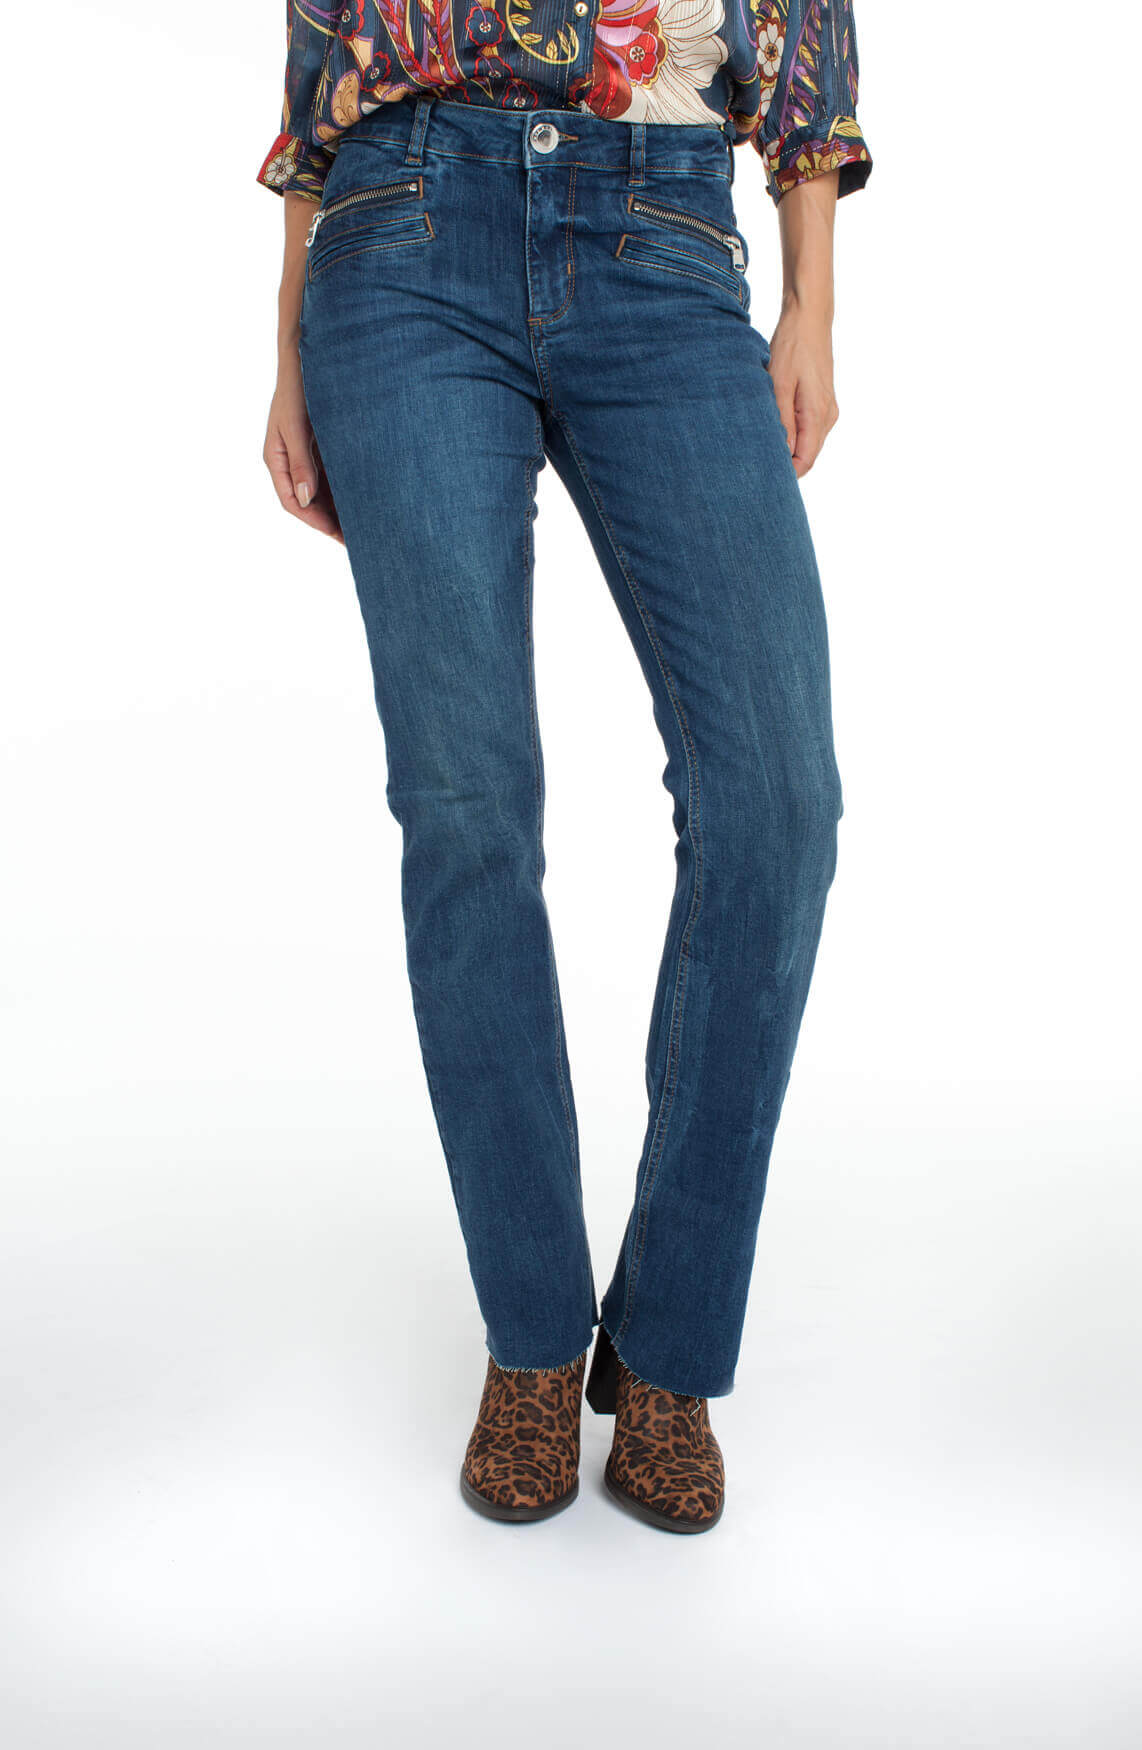 Mos Mosh Dames Sumner flared jeans Blauw